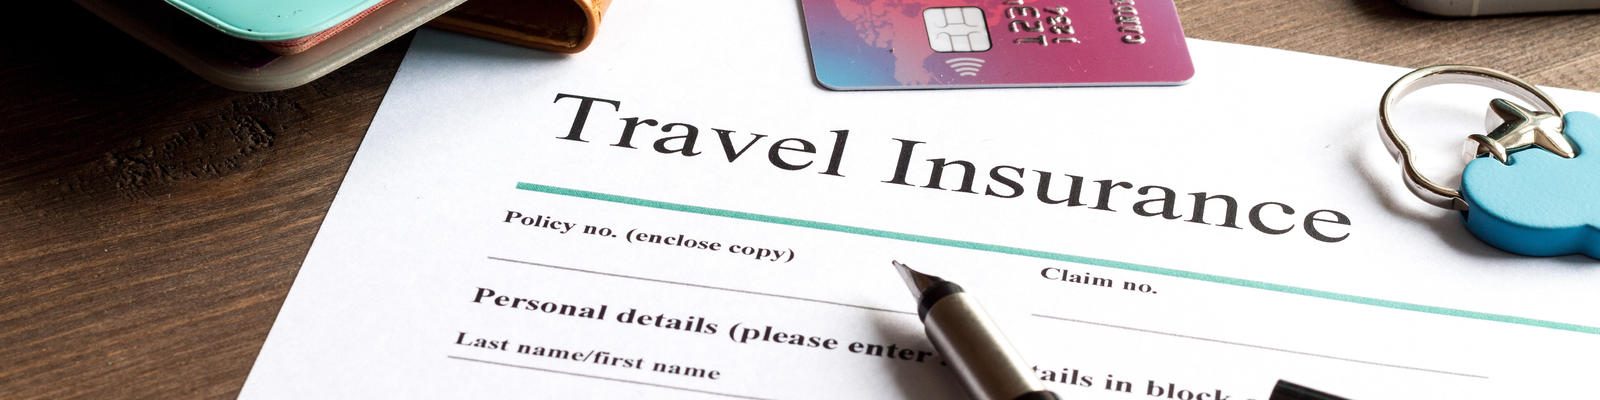 River Cruise Travel Insurance: What It Covers and Why You Need It (Photo: 279photo Studio/Shutterstock)